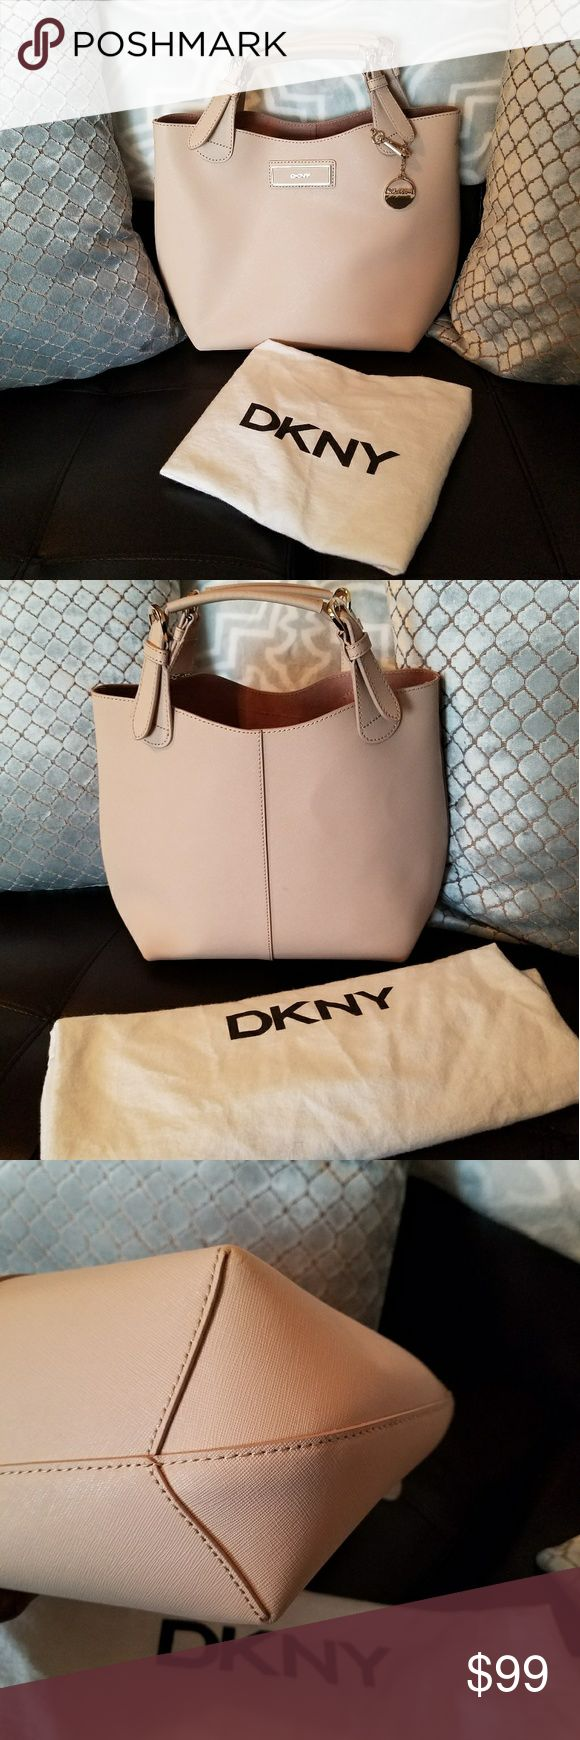 ⬇  MARKDOWN  ⬇ DKNY handbag In like-new condition / additional strap included / dustbag included / 🎀 all offers are welcomed  🎀 DKNY Bags